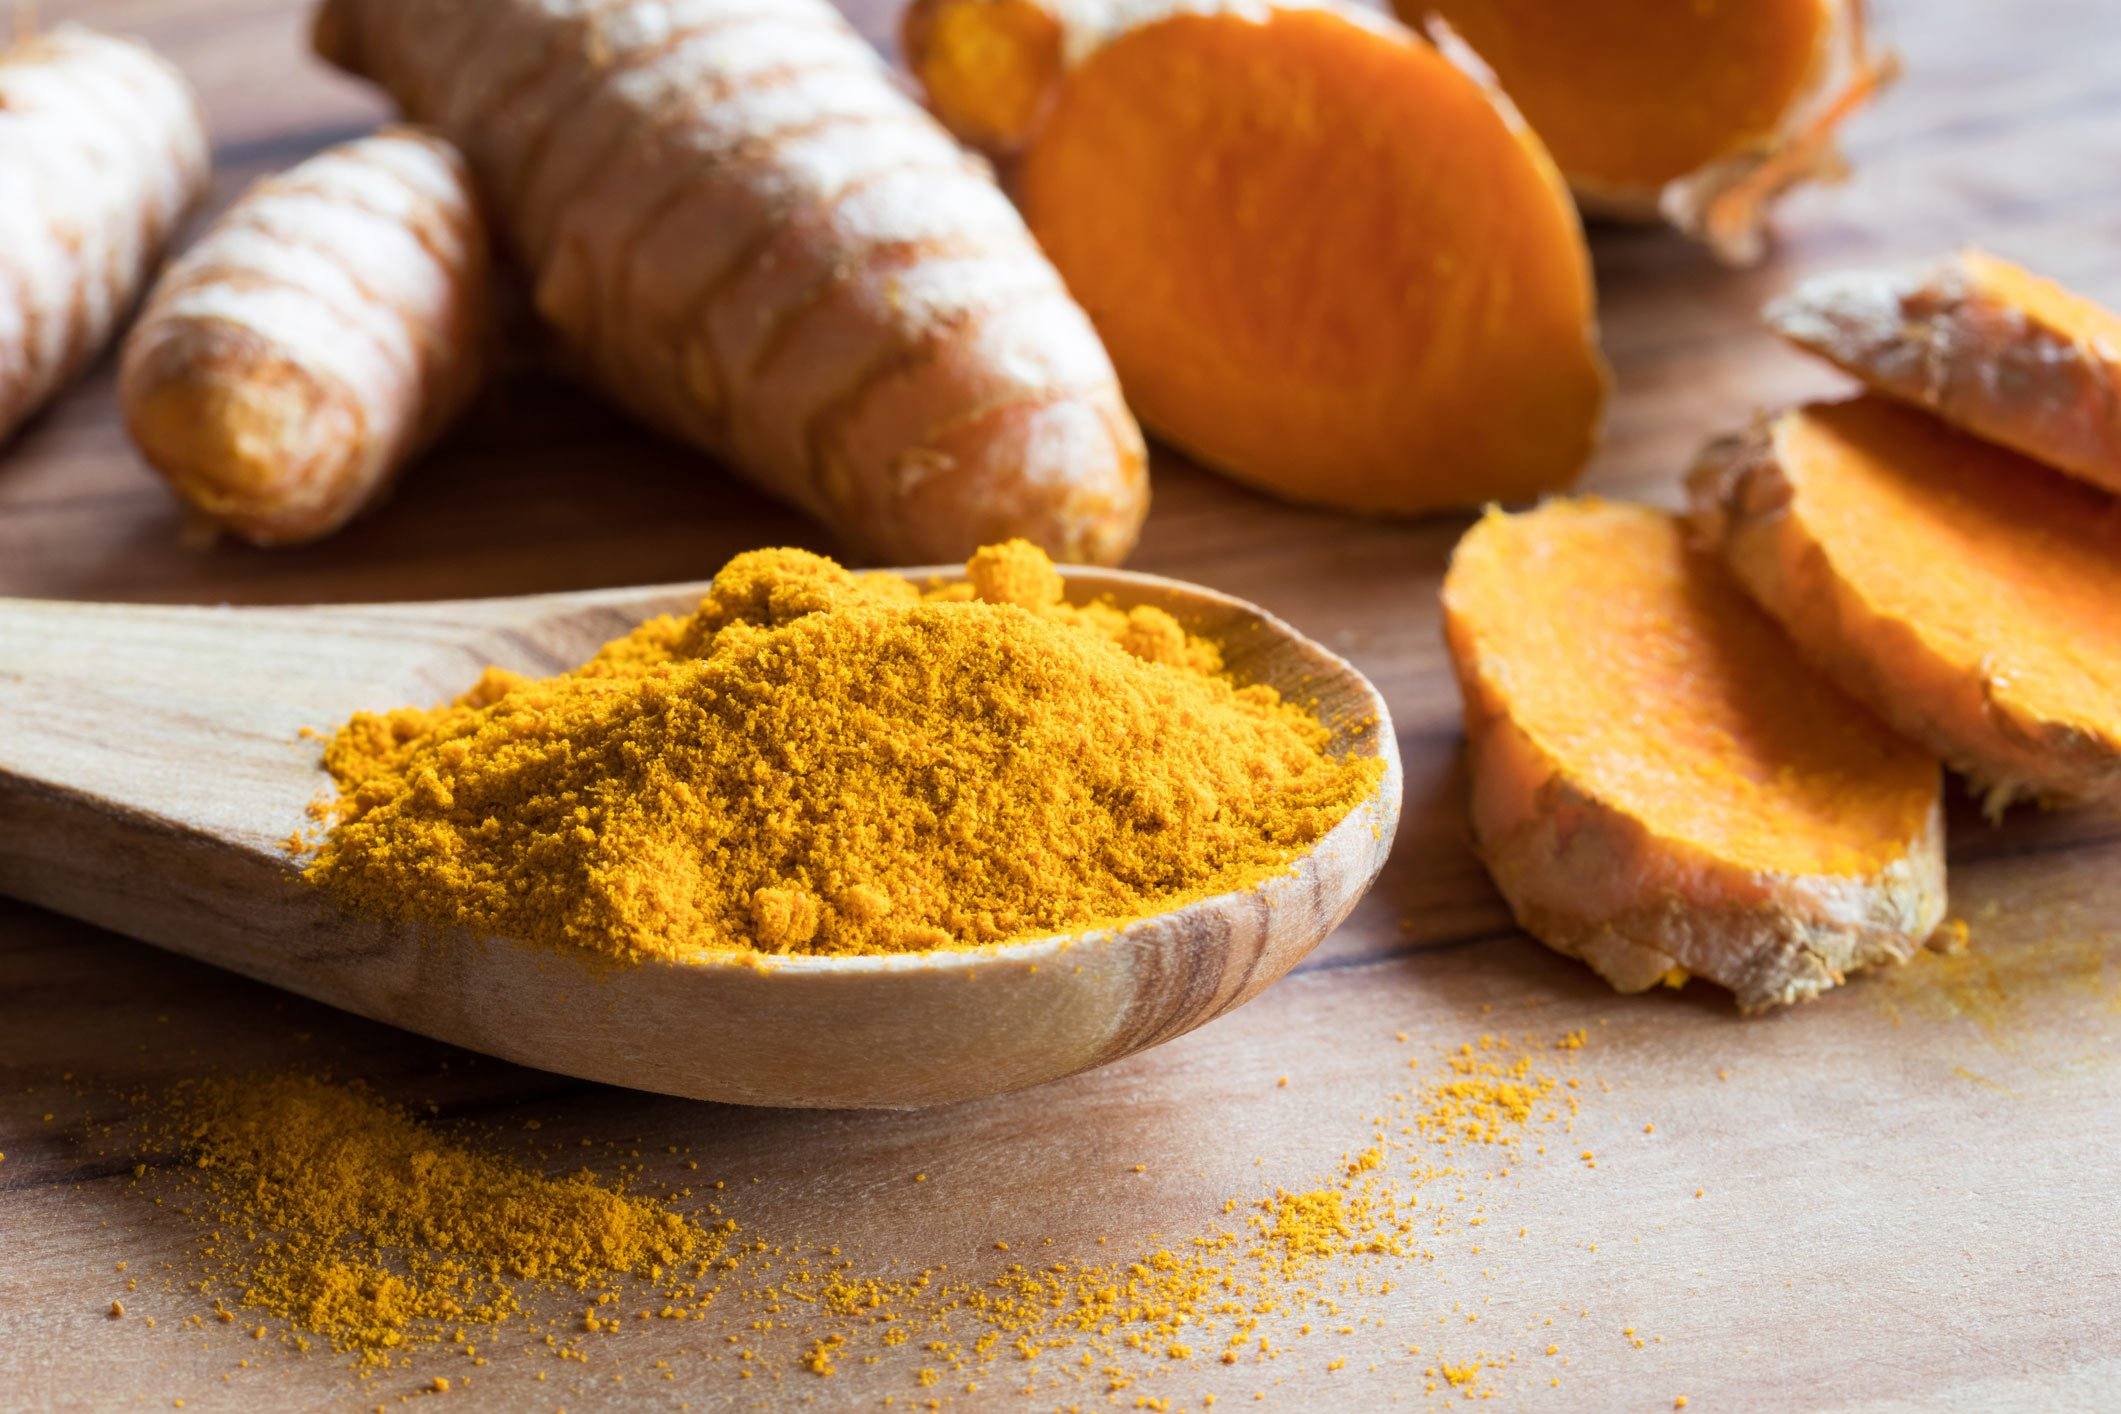 Healthy spices: turmeric